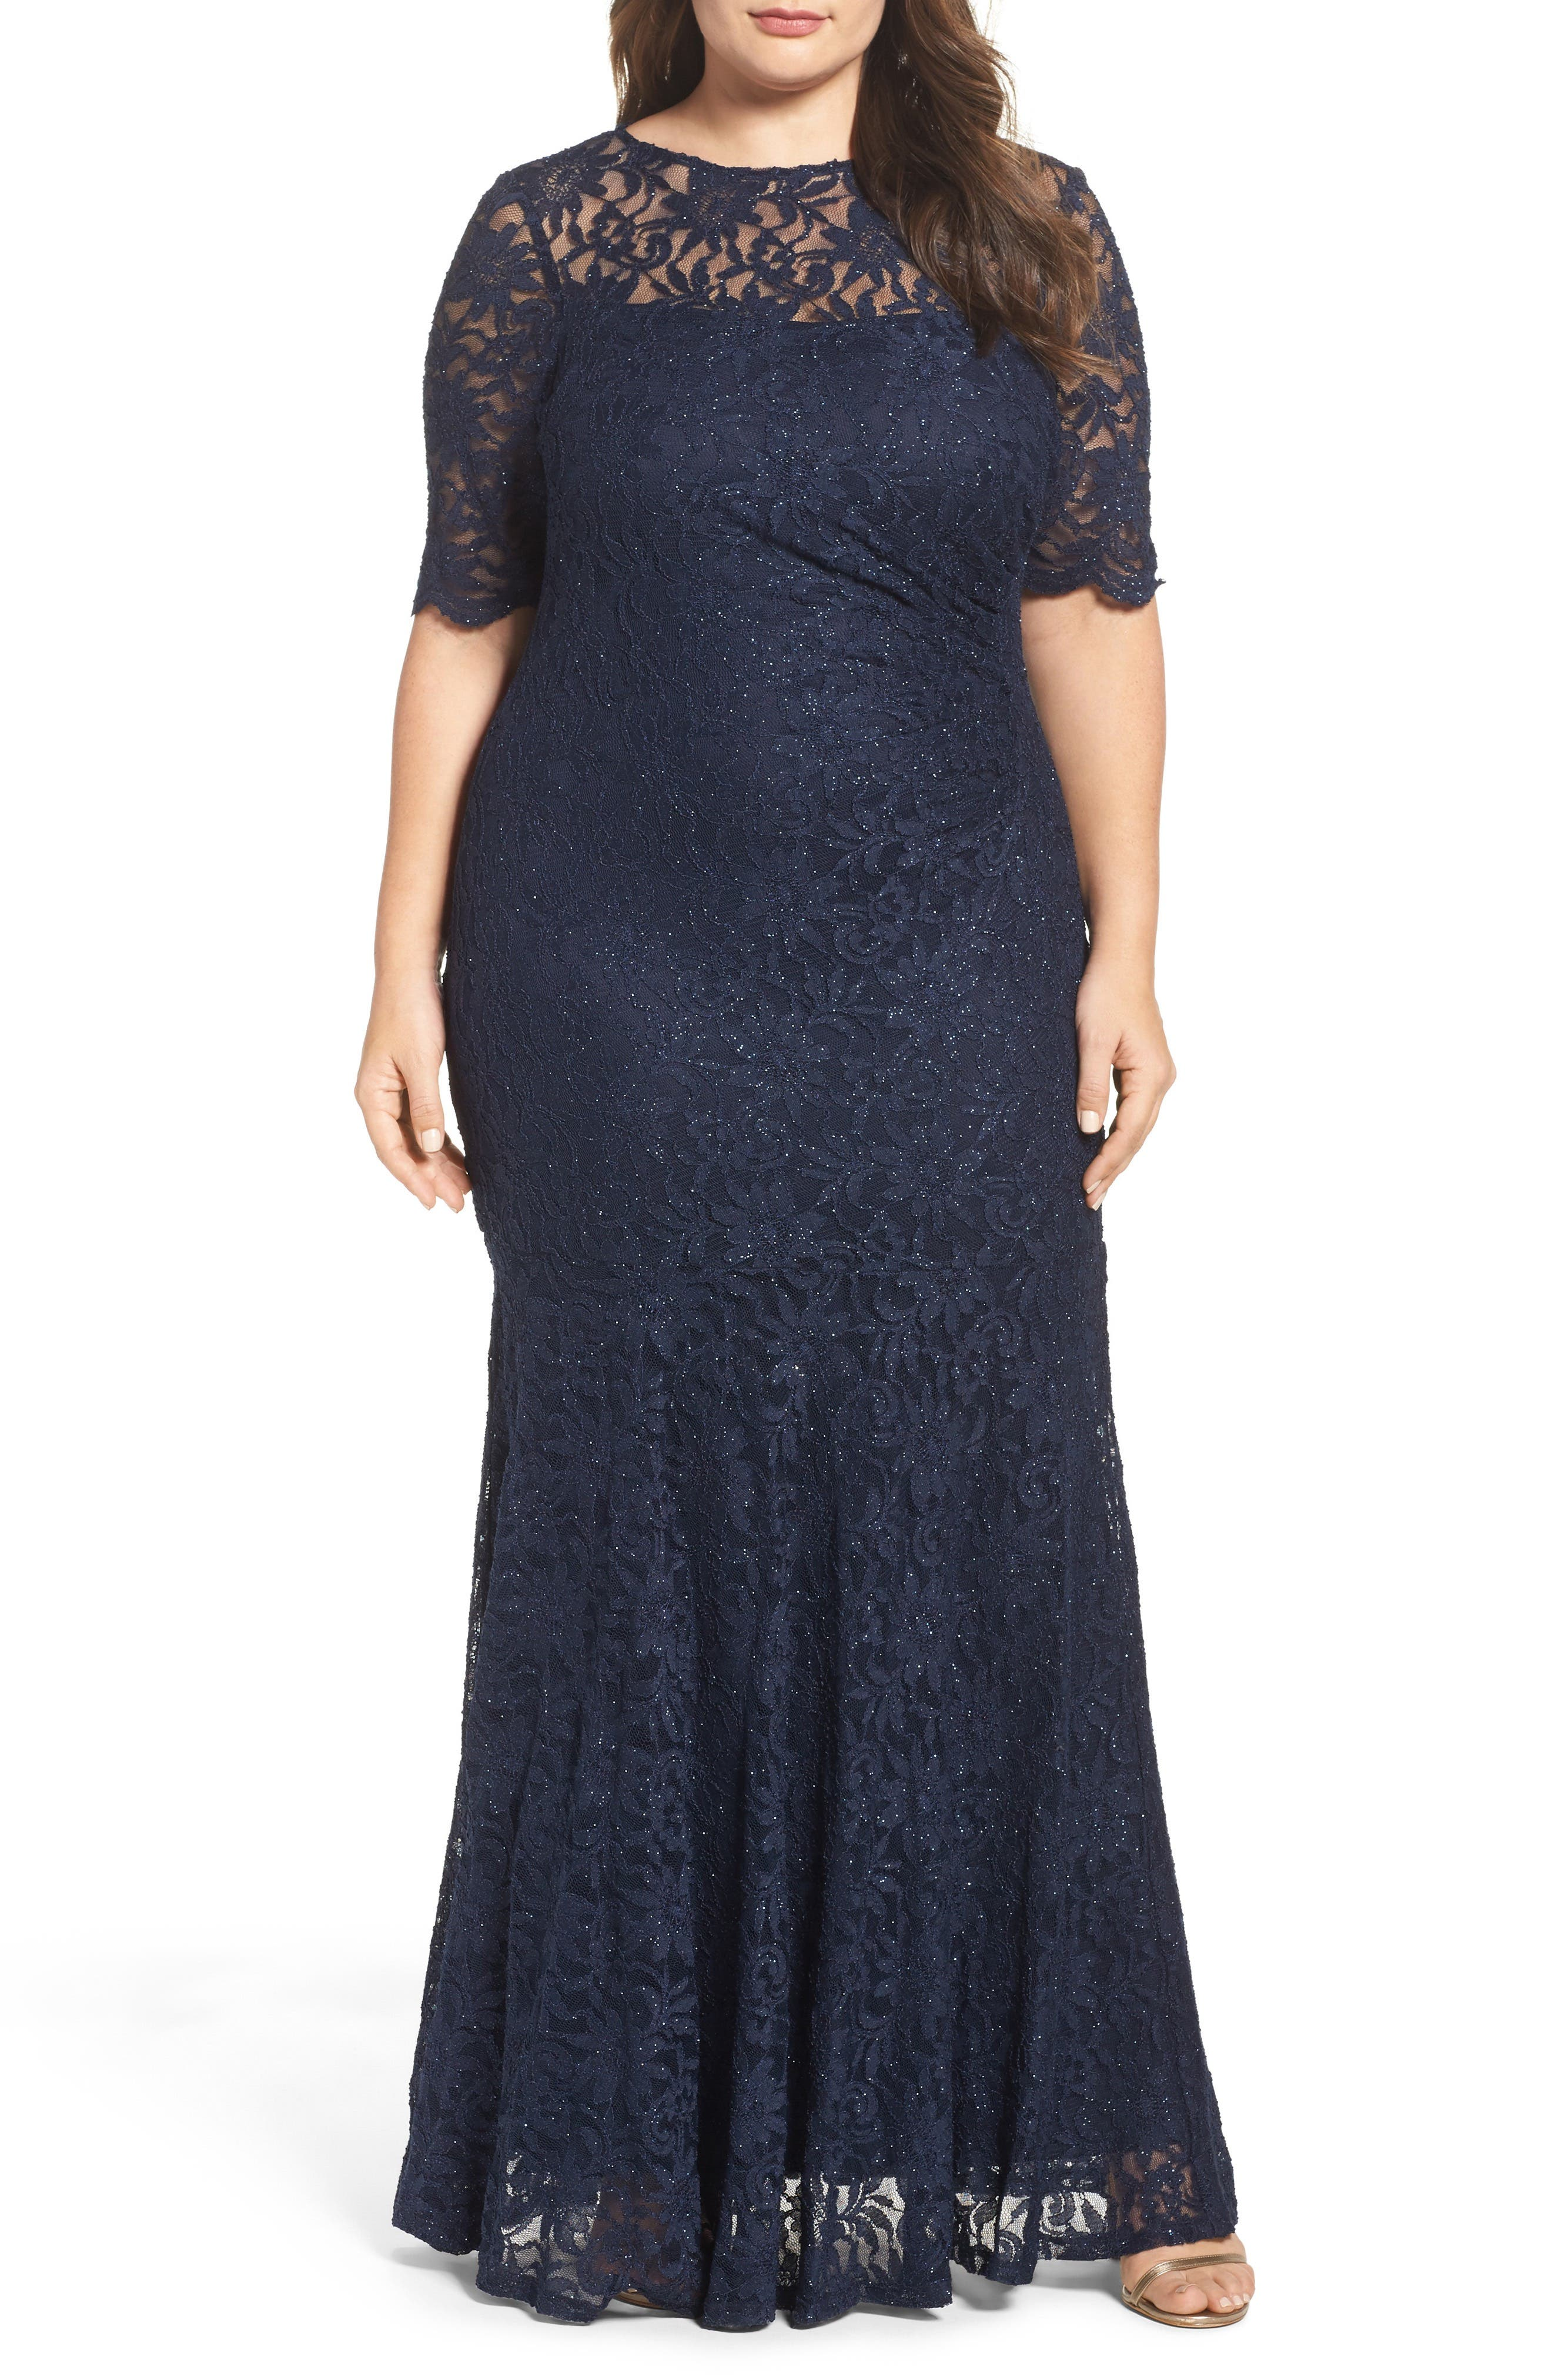 Main Image - Decode 1.8 A-Line Stretch Lace Gown (Plus Size)